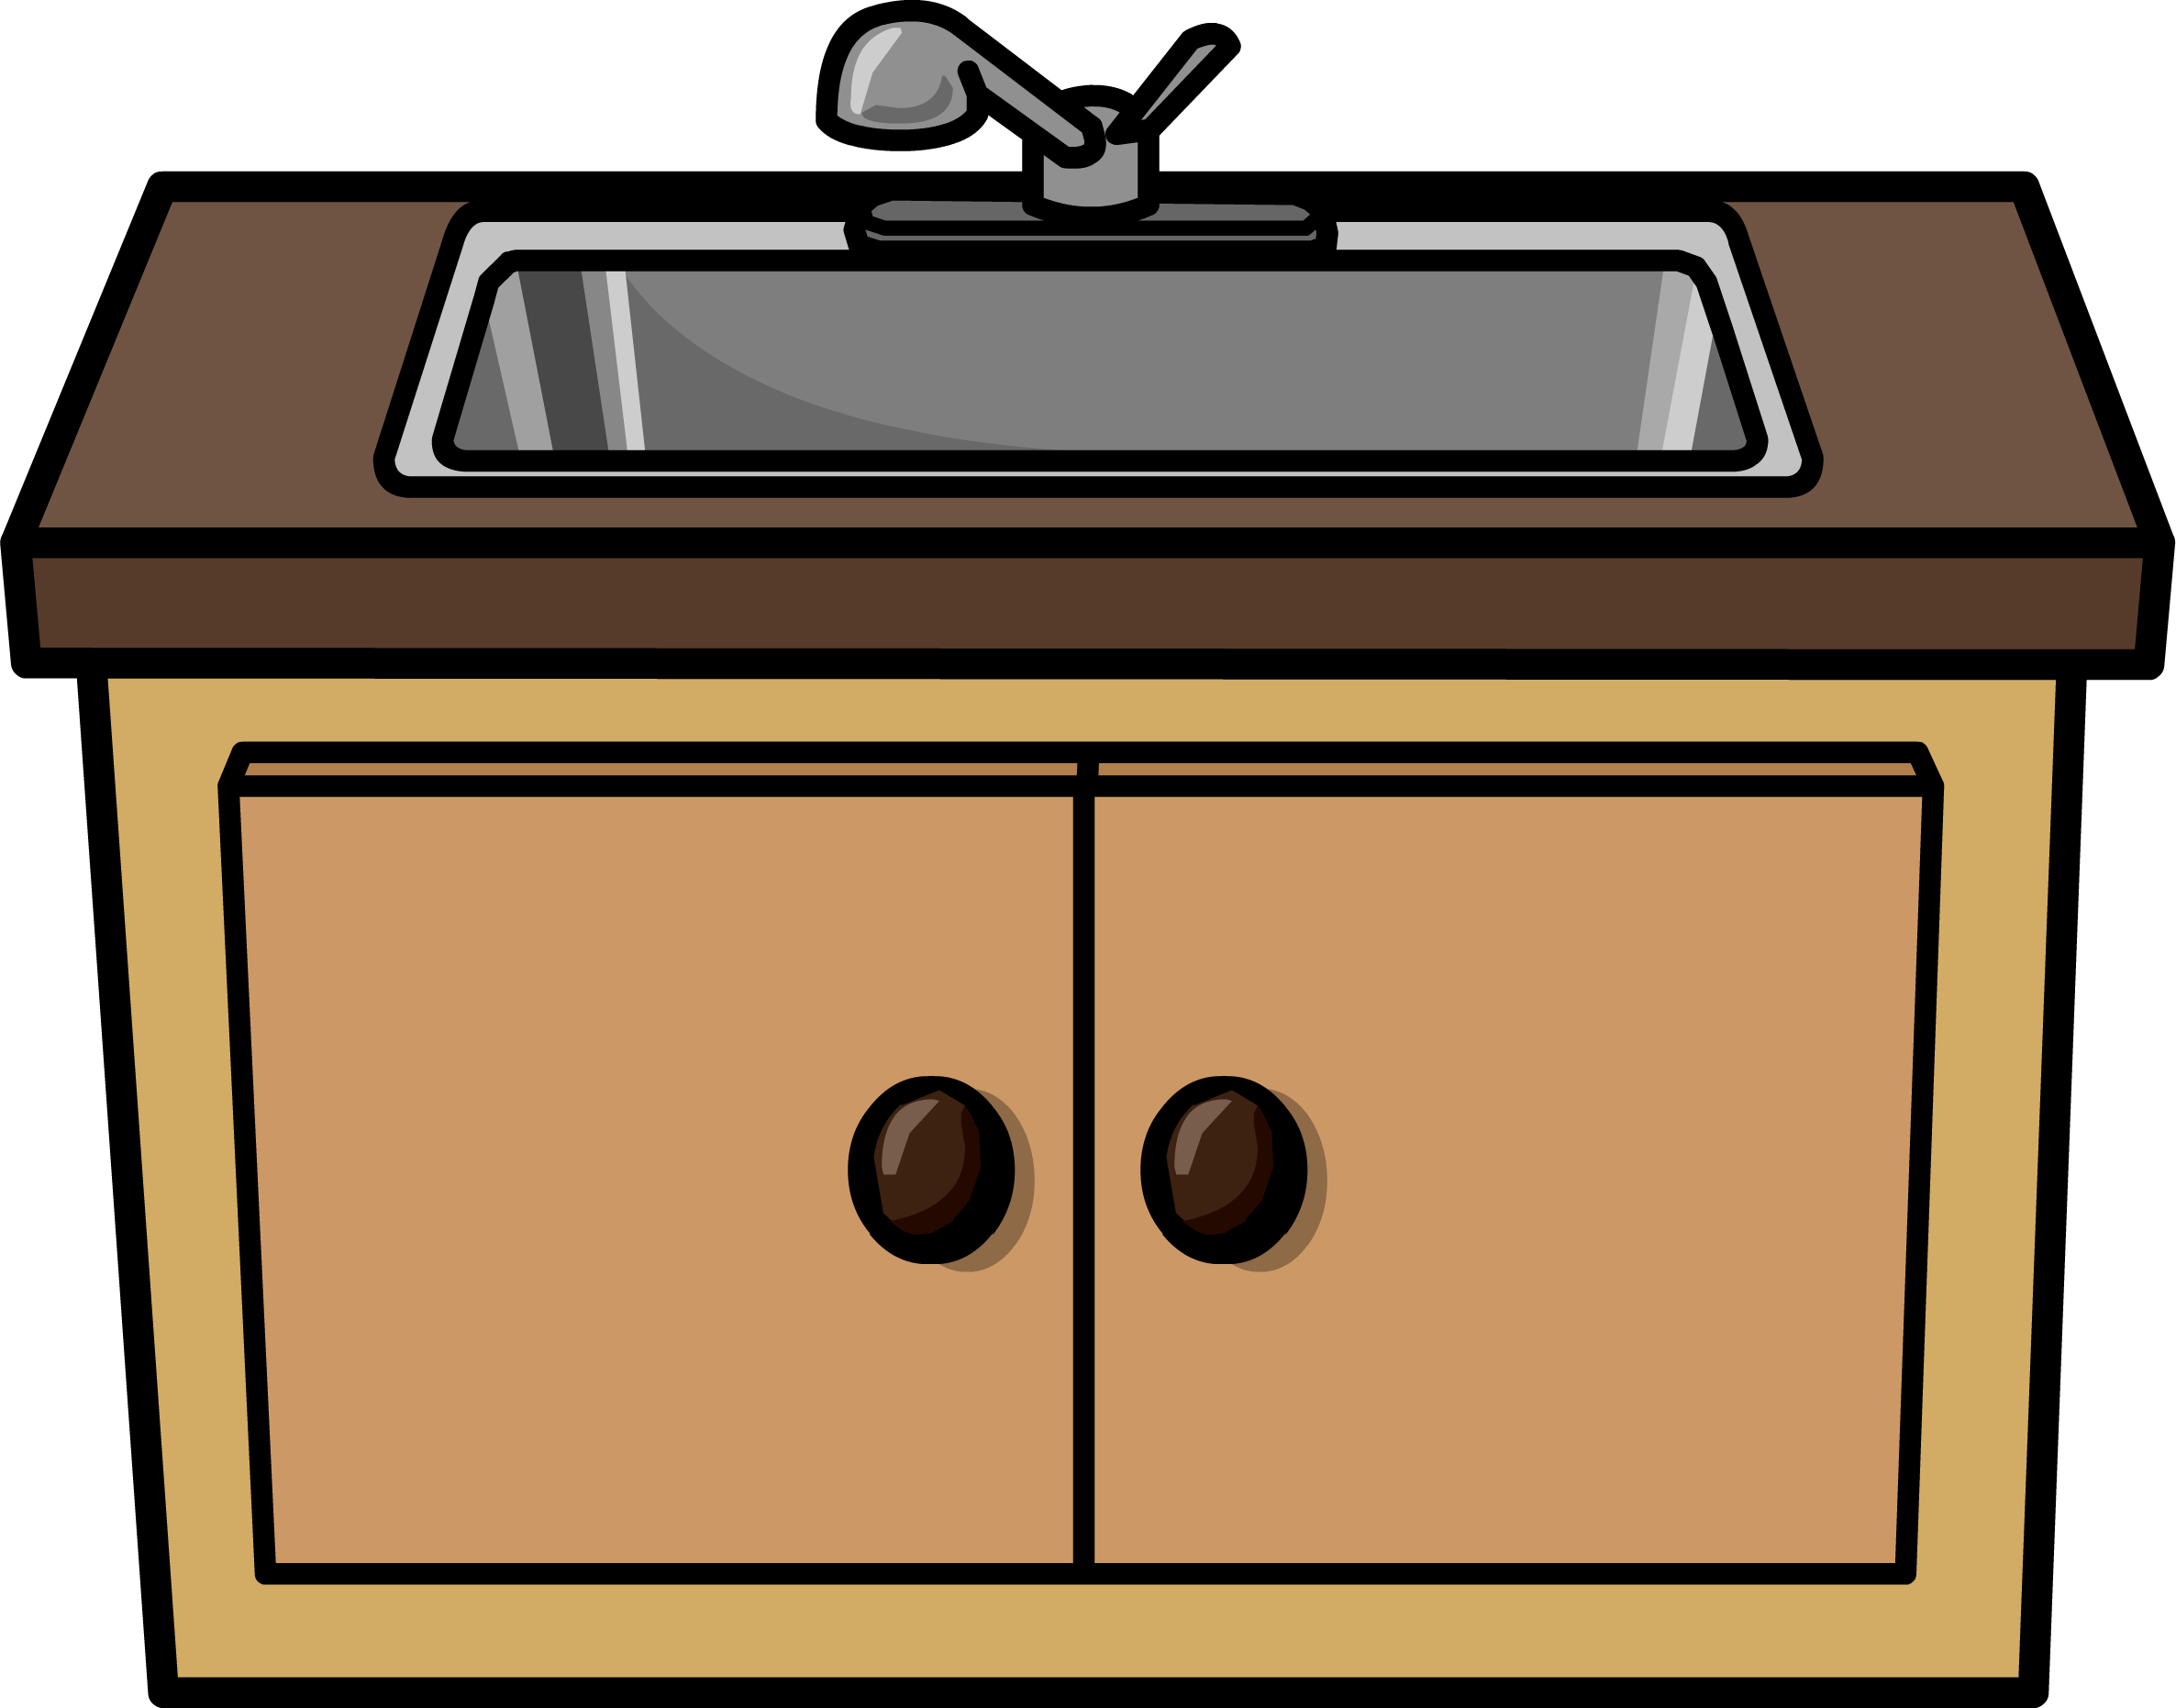 Free Clean Counter Cliparts, Download Free Clip Art, Free.